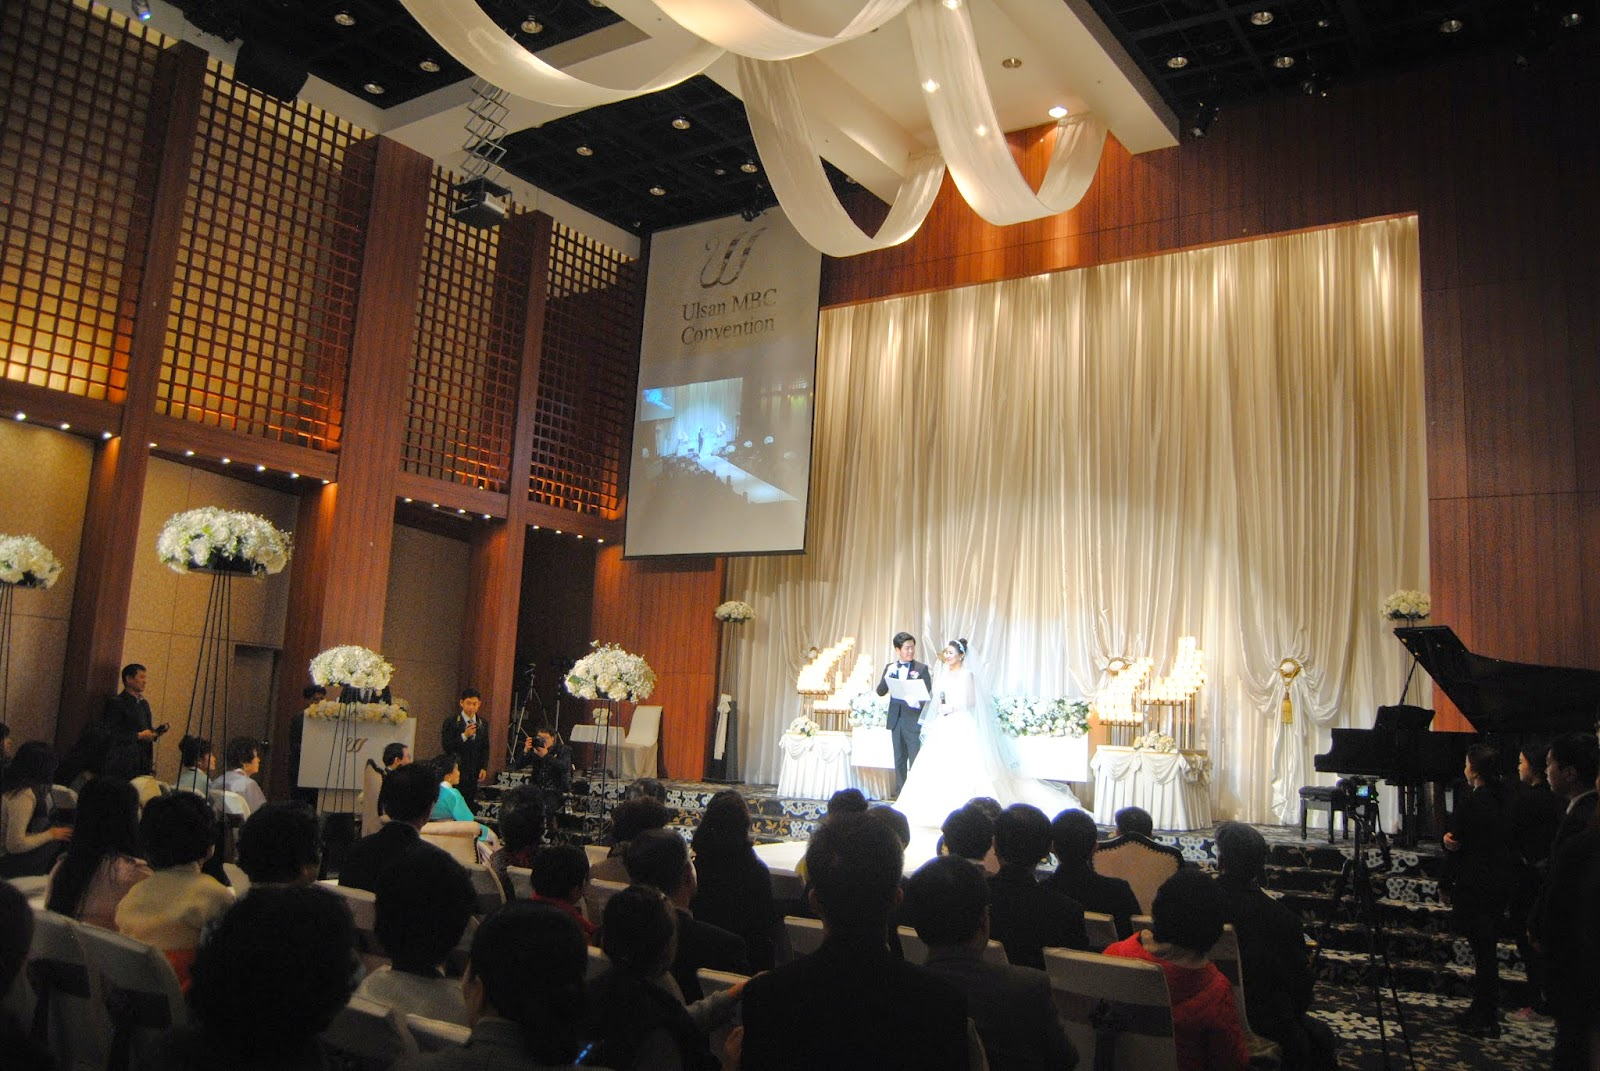 Waygookin round the world a korean wedding this is the wedding hall in which i attended the wedding as you can see its very showy the center aisle and the front area is actually a stage altavistaventures Gallery